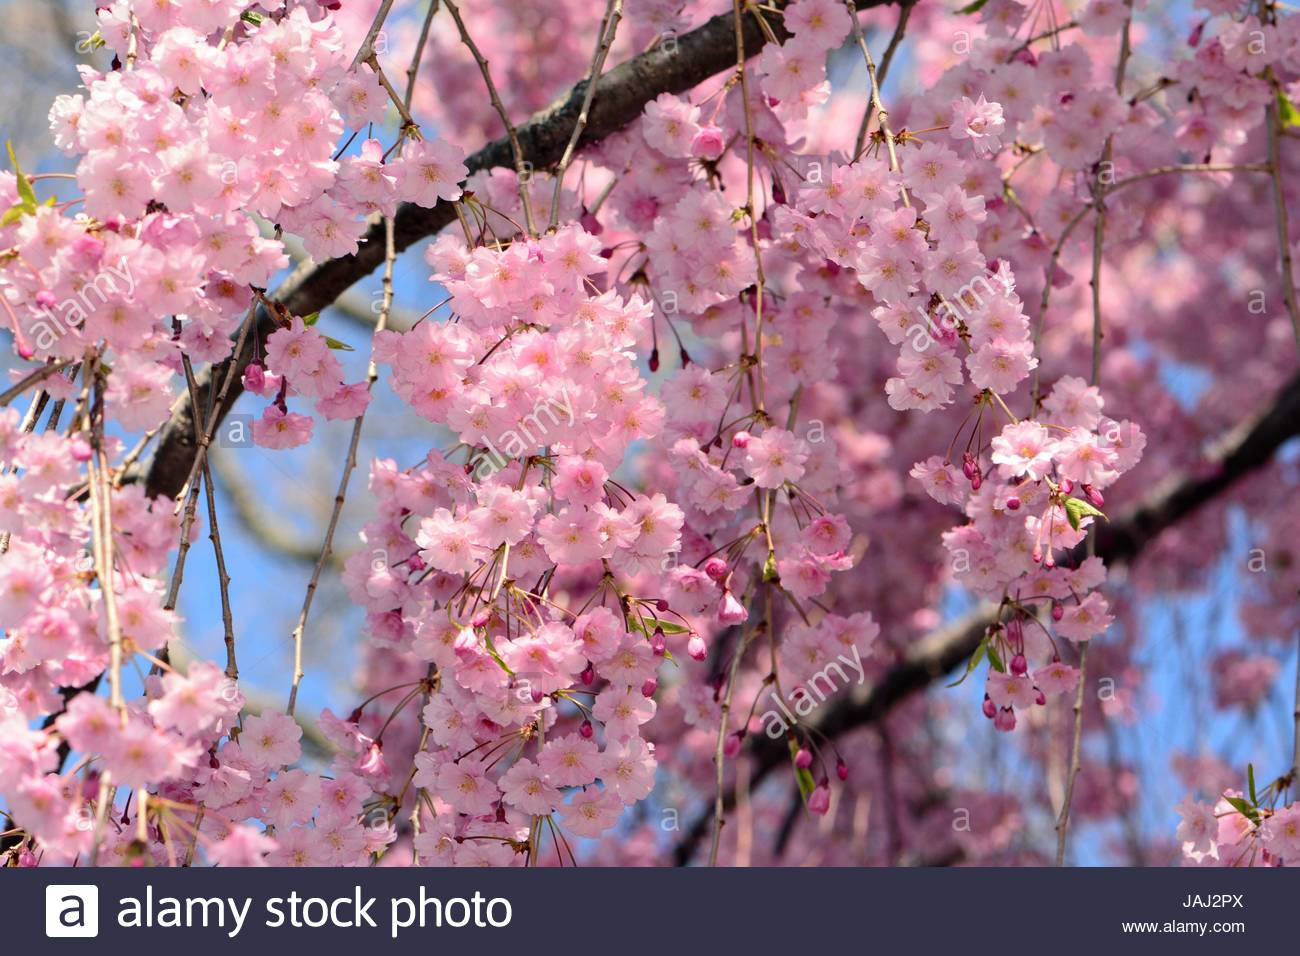 A massive floral display in a weeping higan cherry tree, in spring. - Stock Image